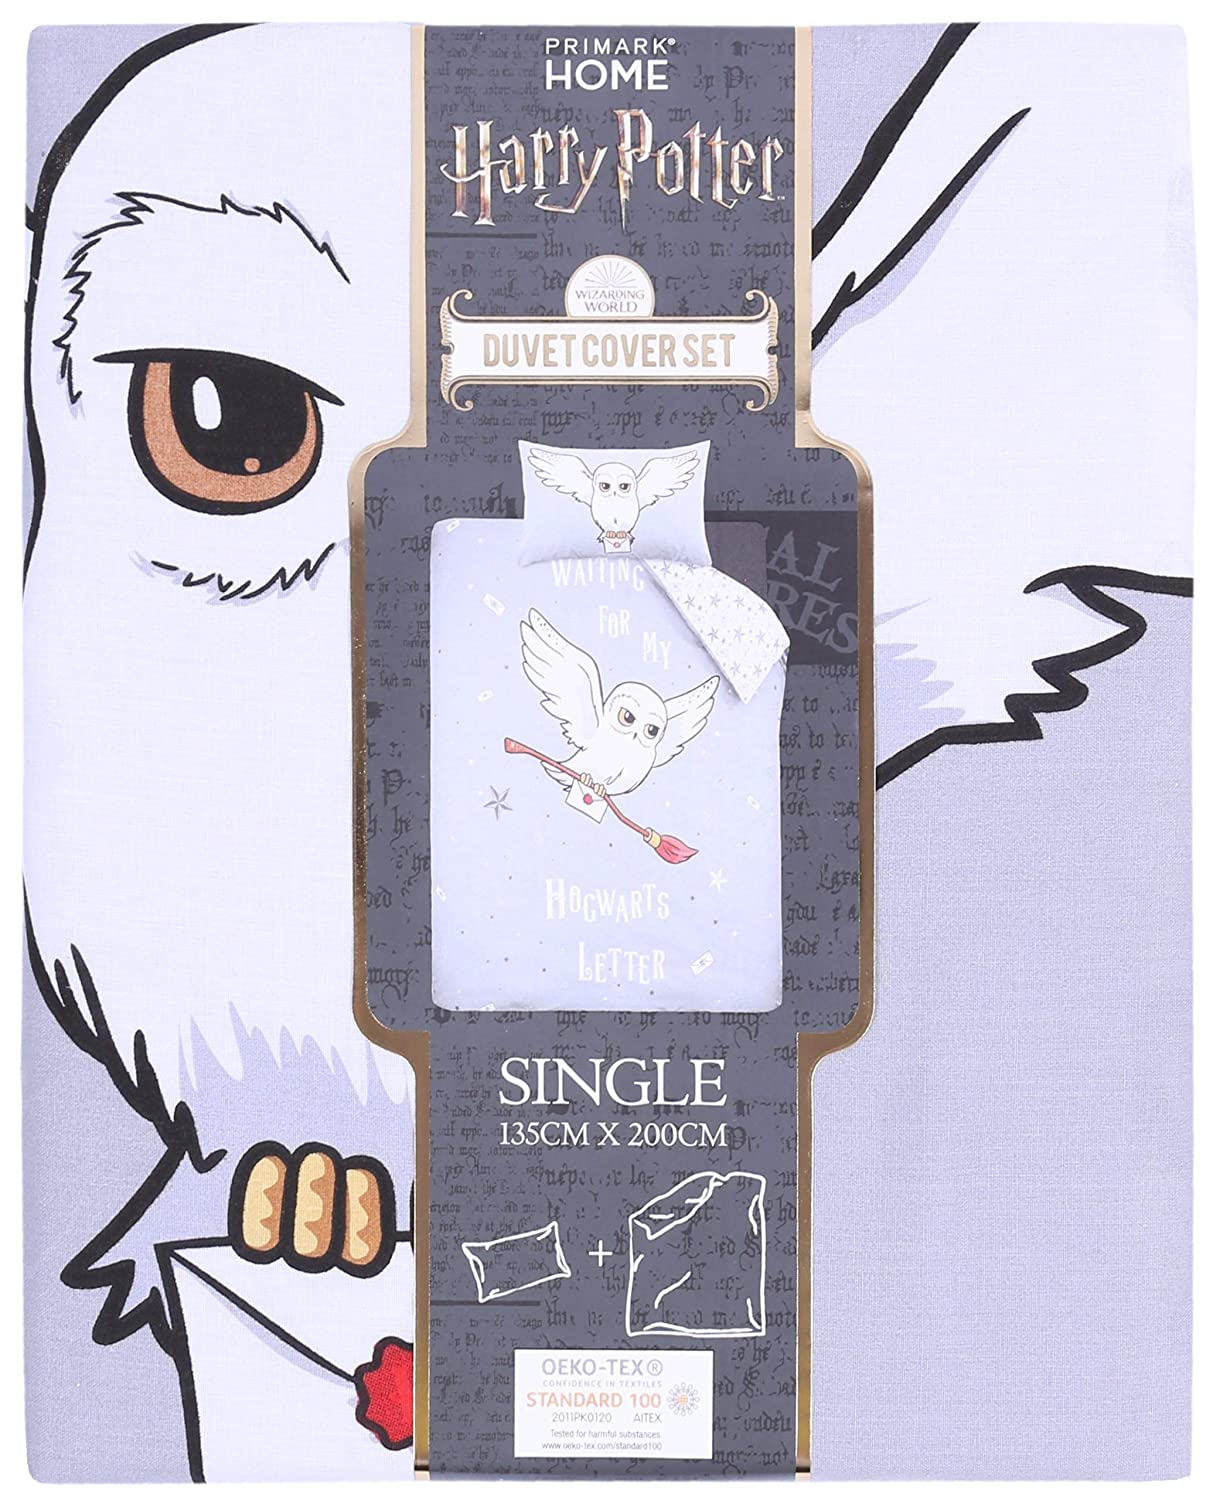 Ropa de Cama Blanca y Gris 135x200 Harry Potter: Amazon.es ...